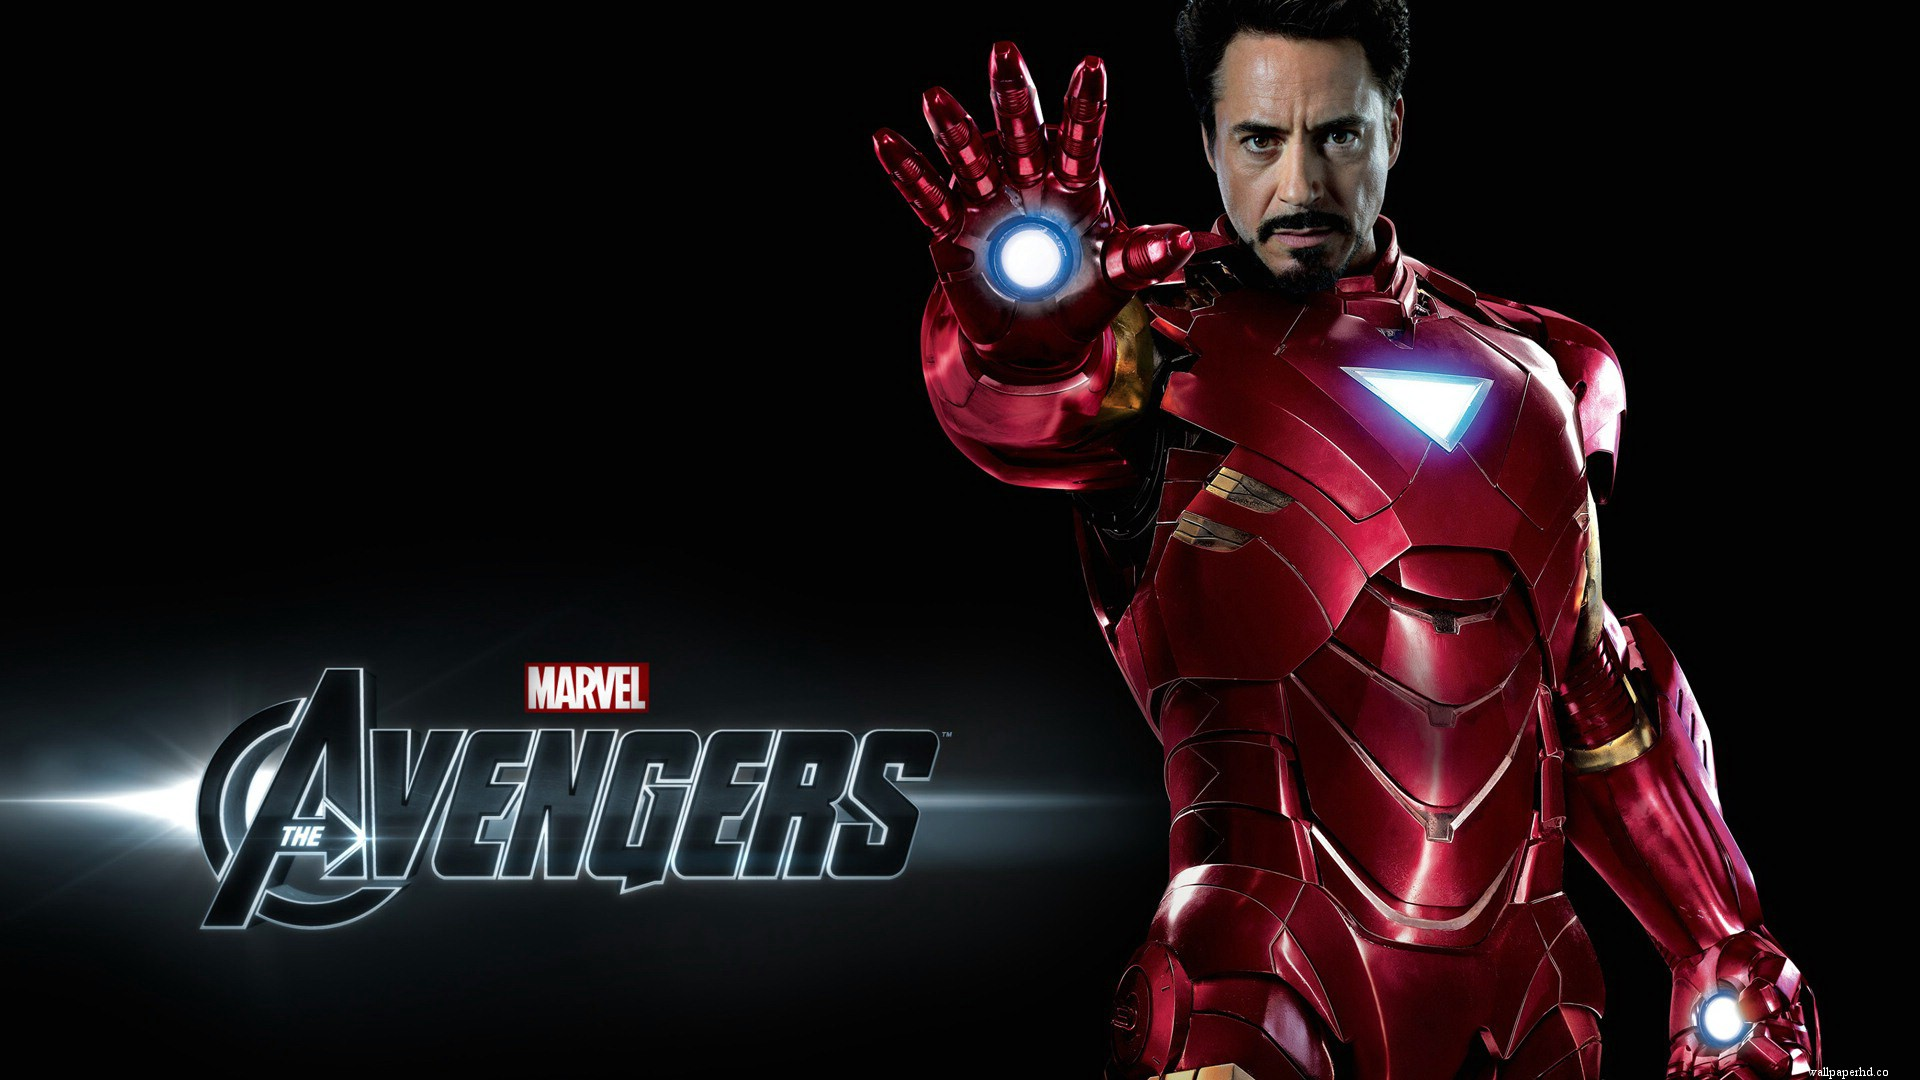 The Avengers Wallpapers 16 HD Movie Wallpapers 1920x1080 1920x1080